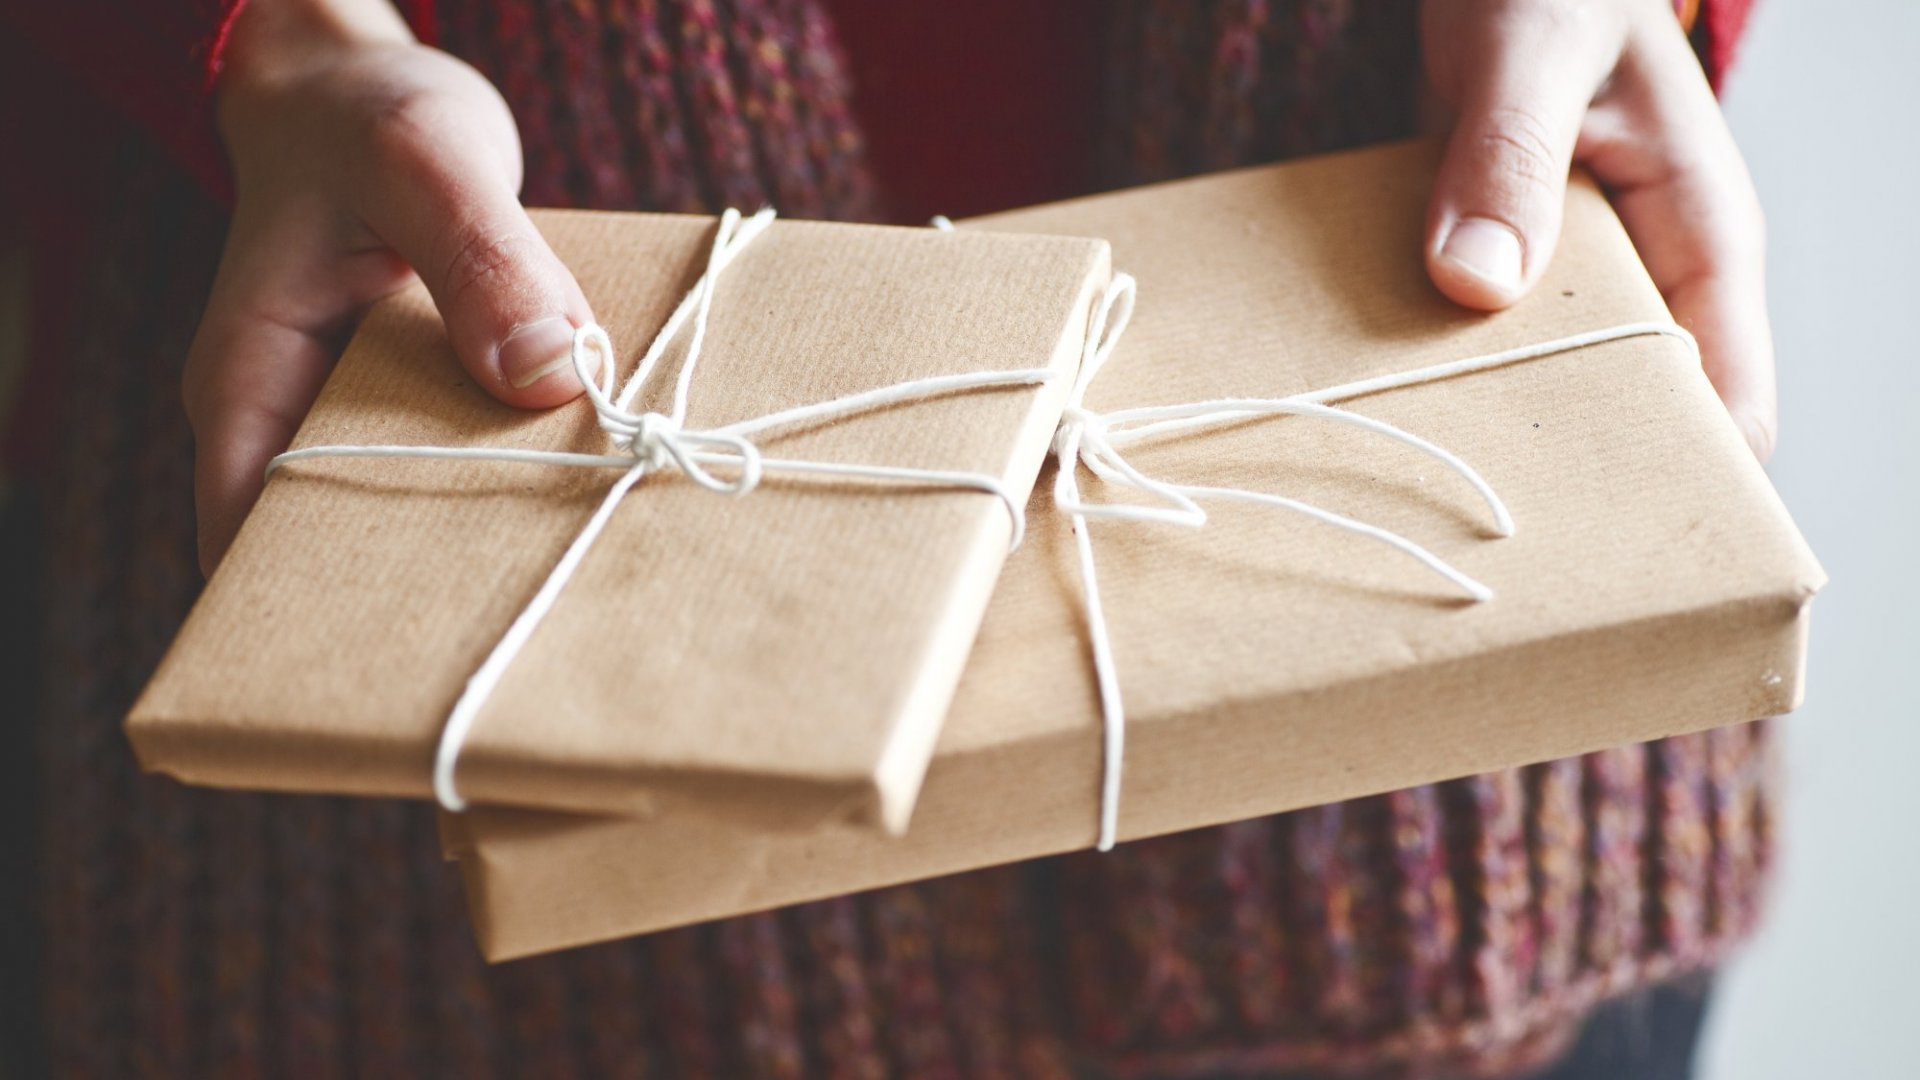 The 13 Best Business Books to Give as Gifts, According to TED Speakers